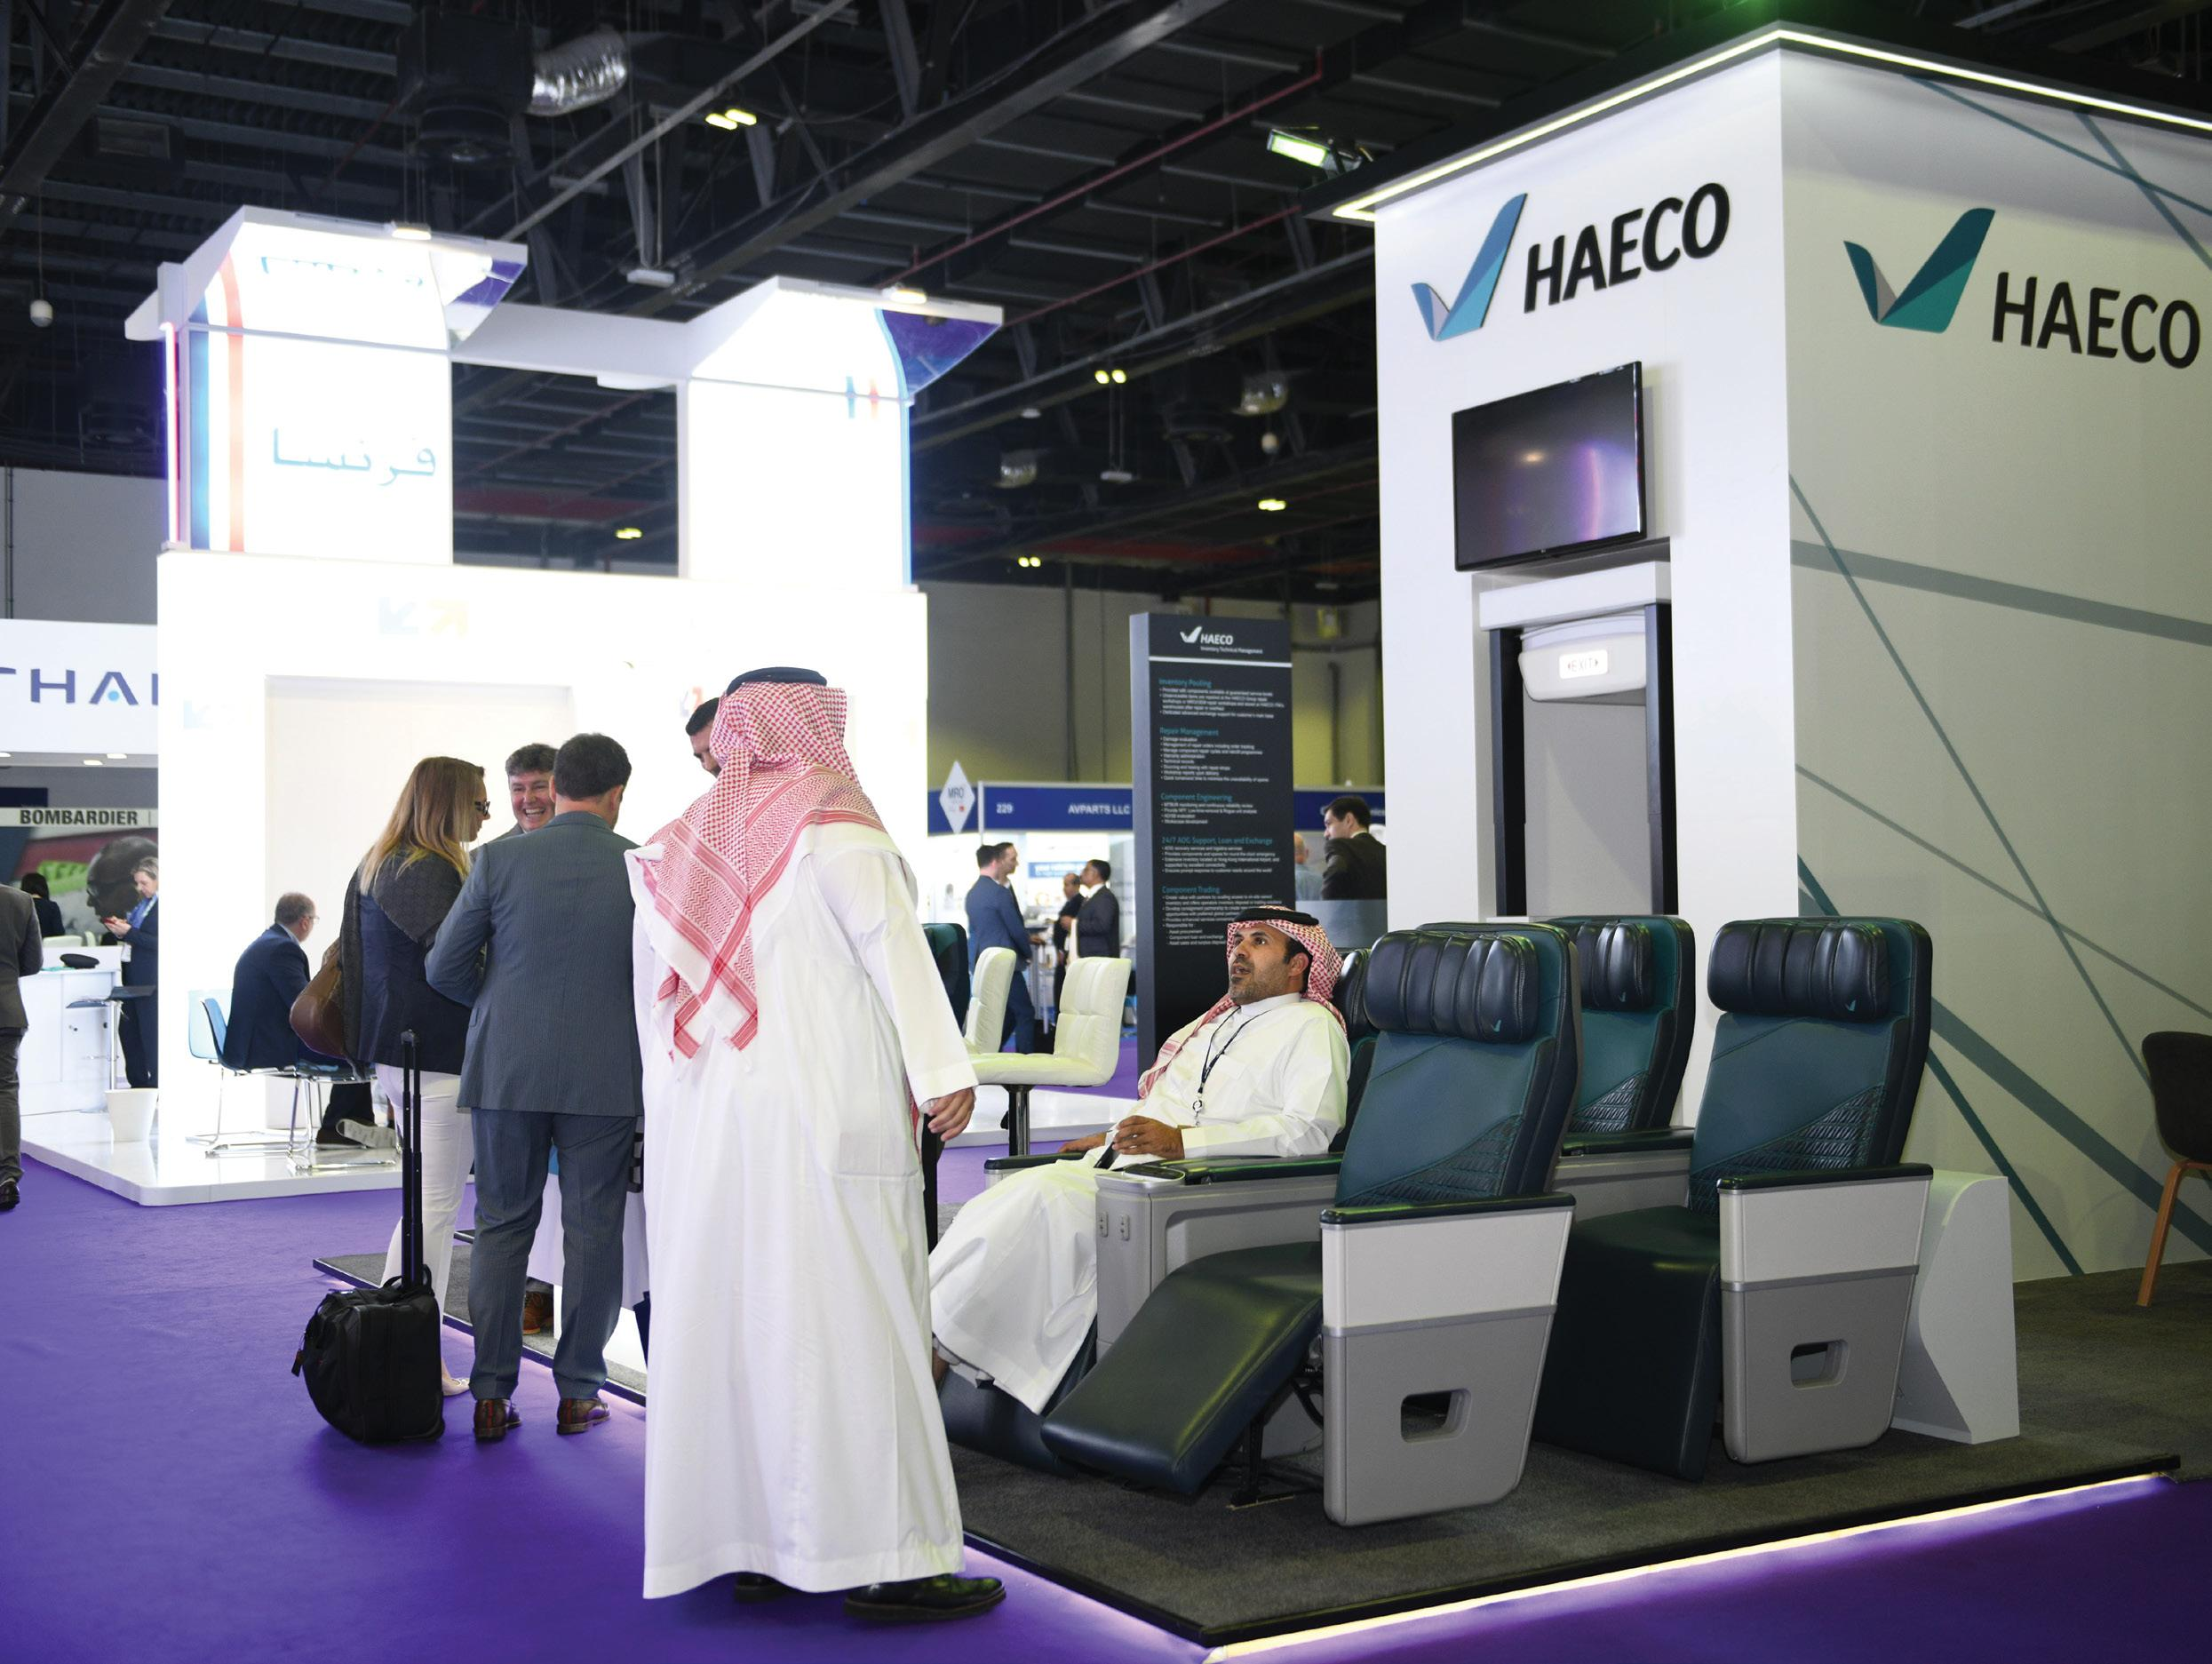 Page 50 of EYE ON IFEC This year's Aircraft Interiors Middle East teamed IFE and connectivity with maintenance, repair and overhaul in a two-day event at the Dubai World Trade Centre